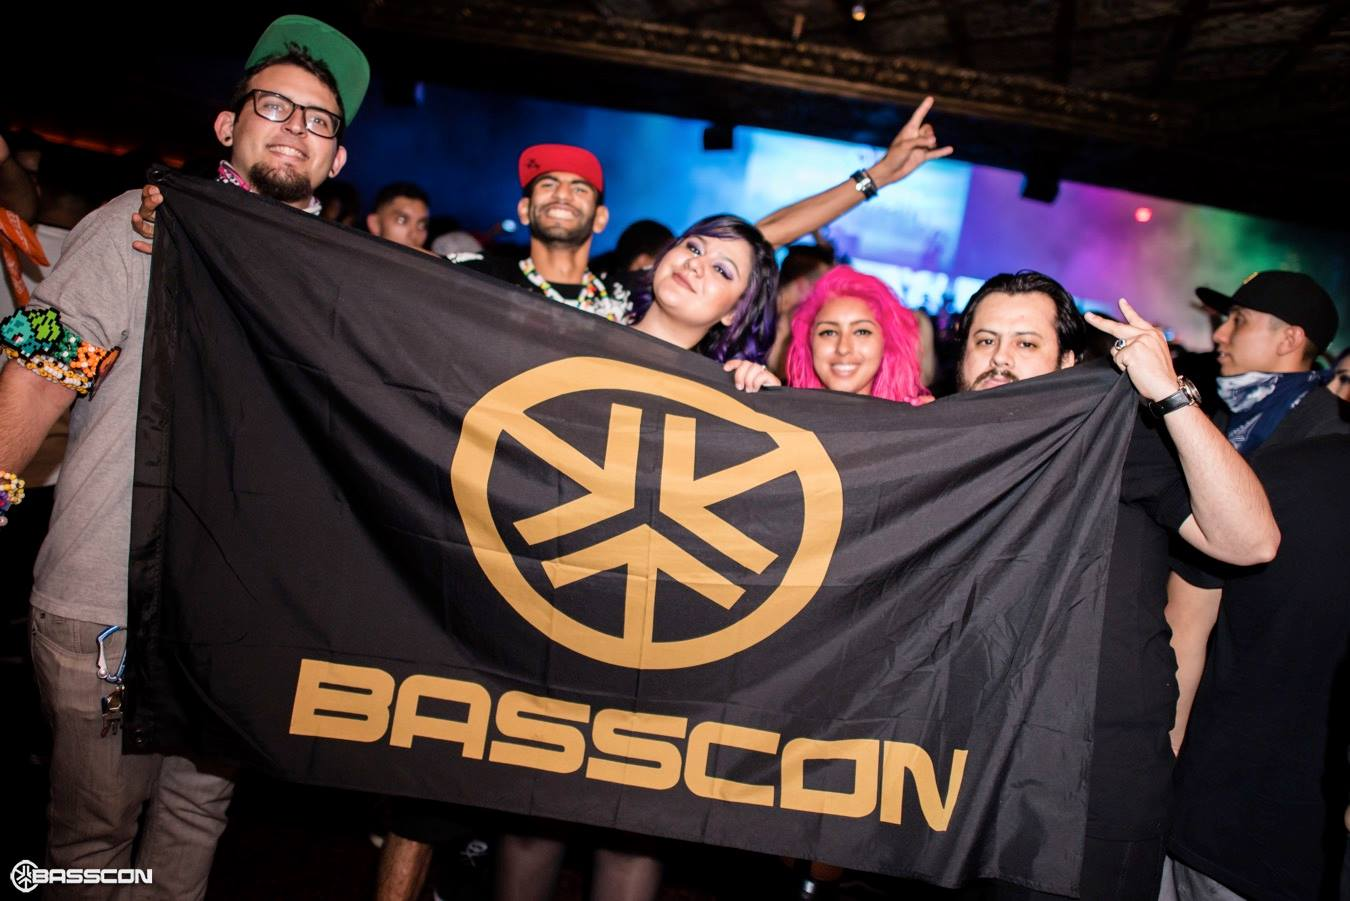 BASSCON POOL PARTY WILL BE THE FIRST EVER HARDSTYLE POOL PARTY IN THE U.S. DURING EDC WEEK 2016